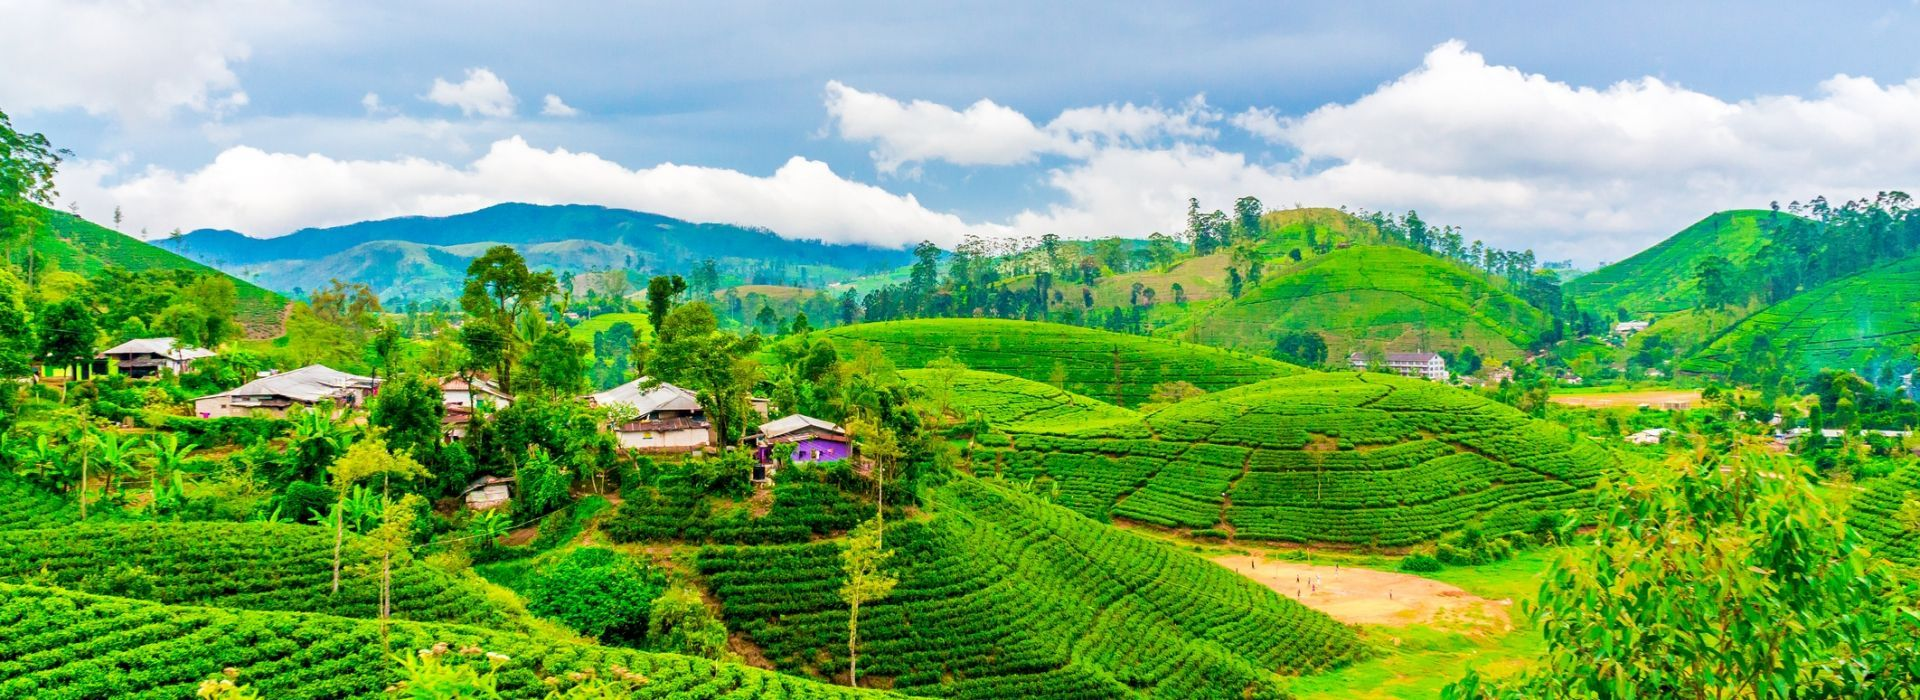 Countryside and village visits Tours in Sri Lanka